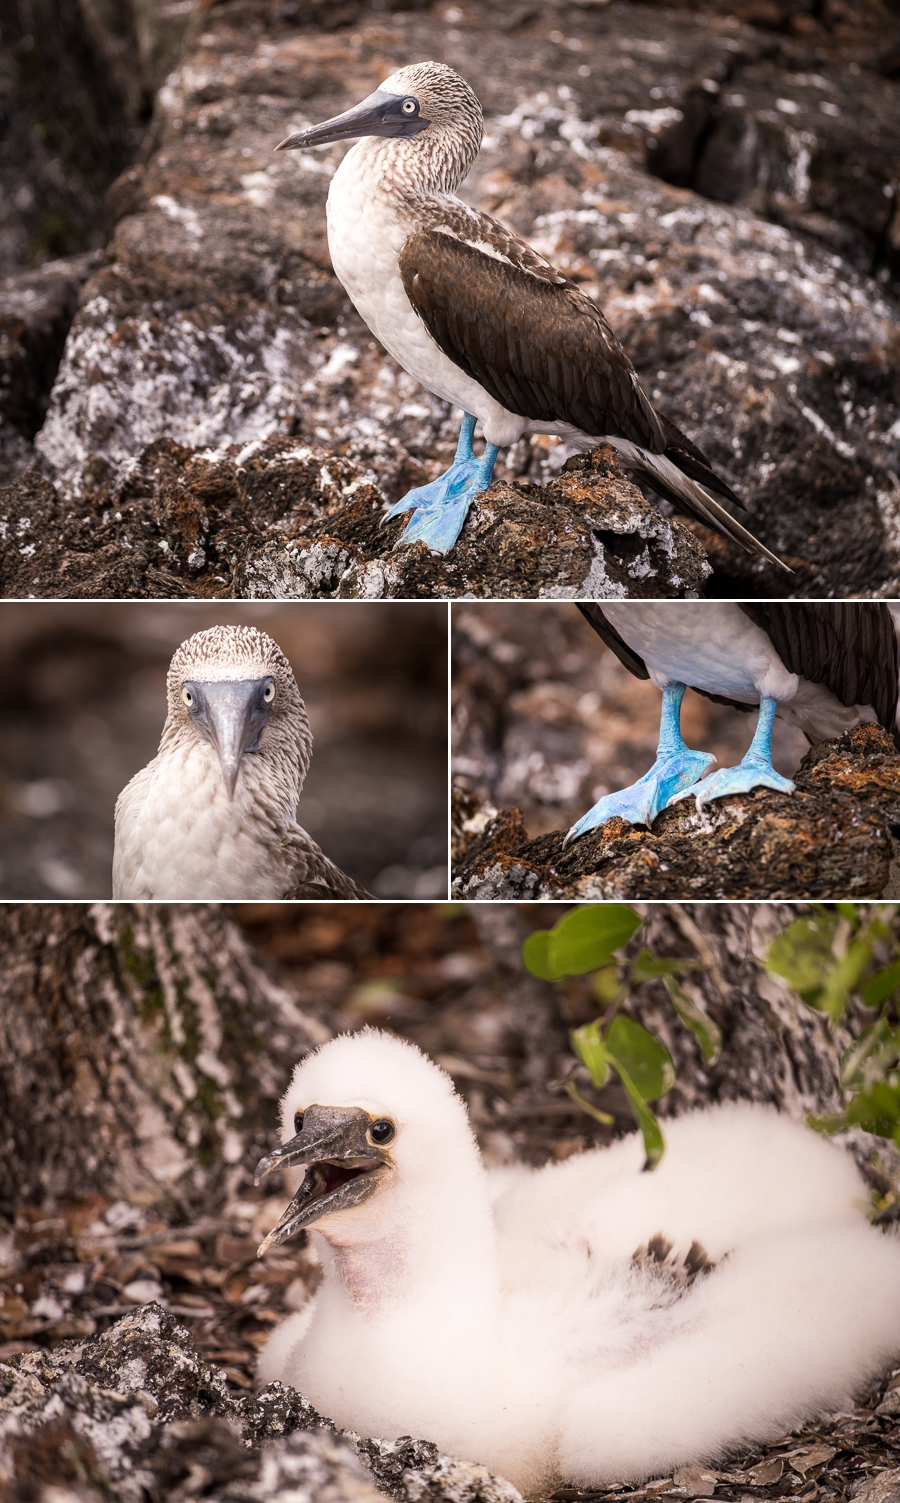 Images of a Blue-footed Boobie at Los Túneles, and a fluffy chick